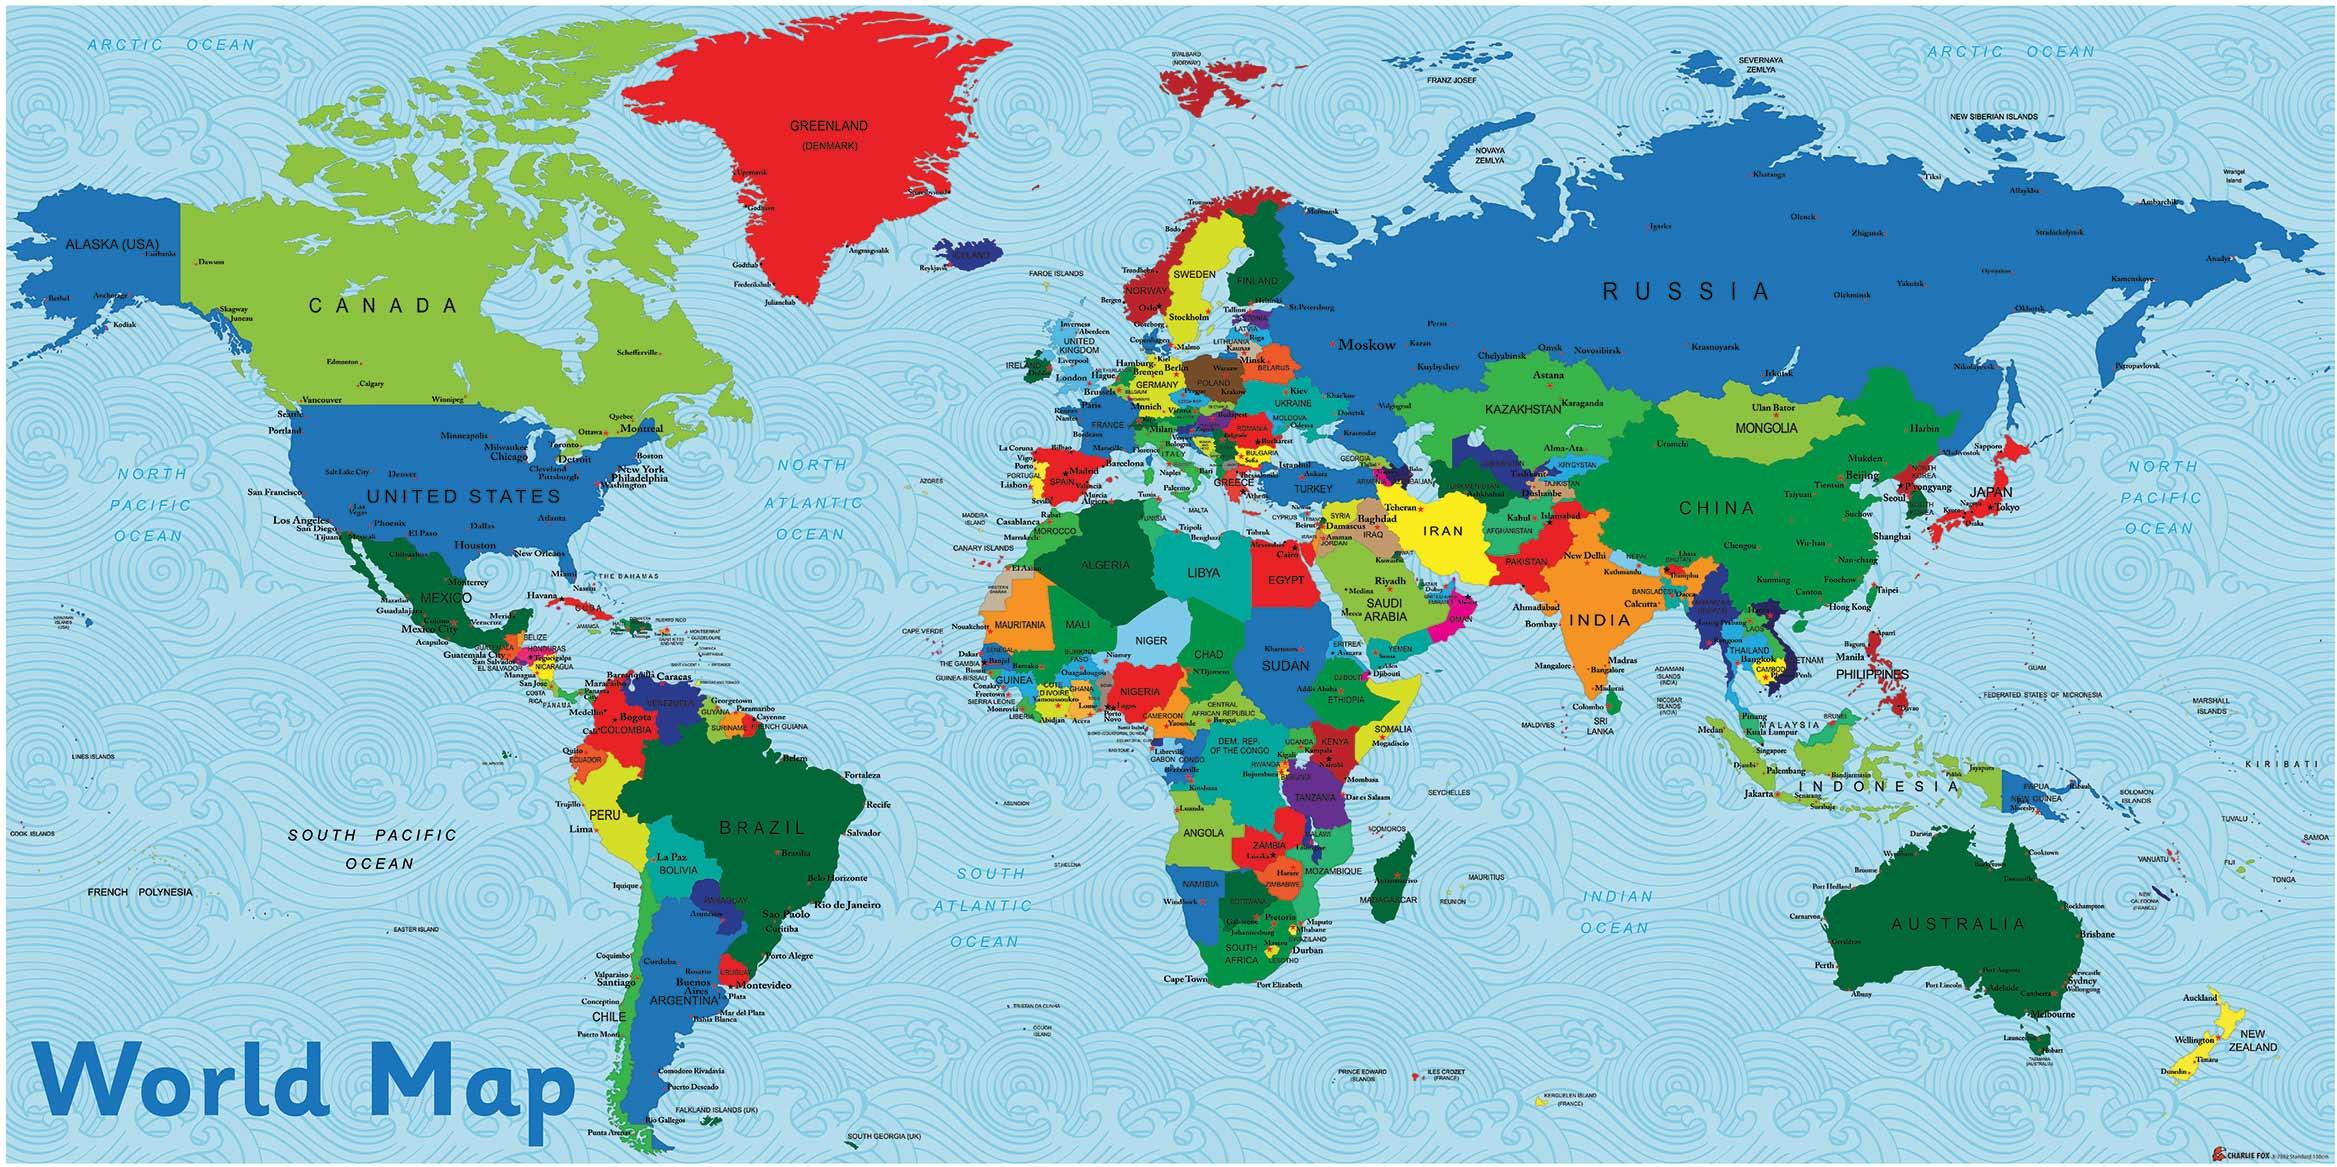 Uk In Map Of World.World Map